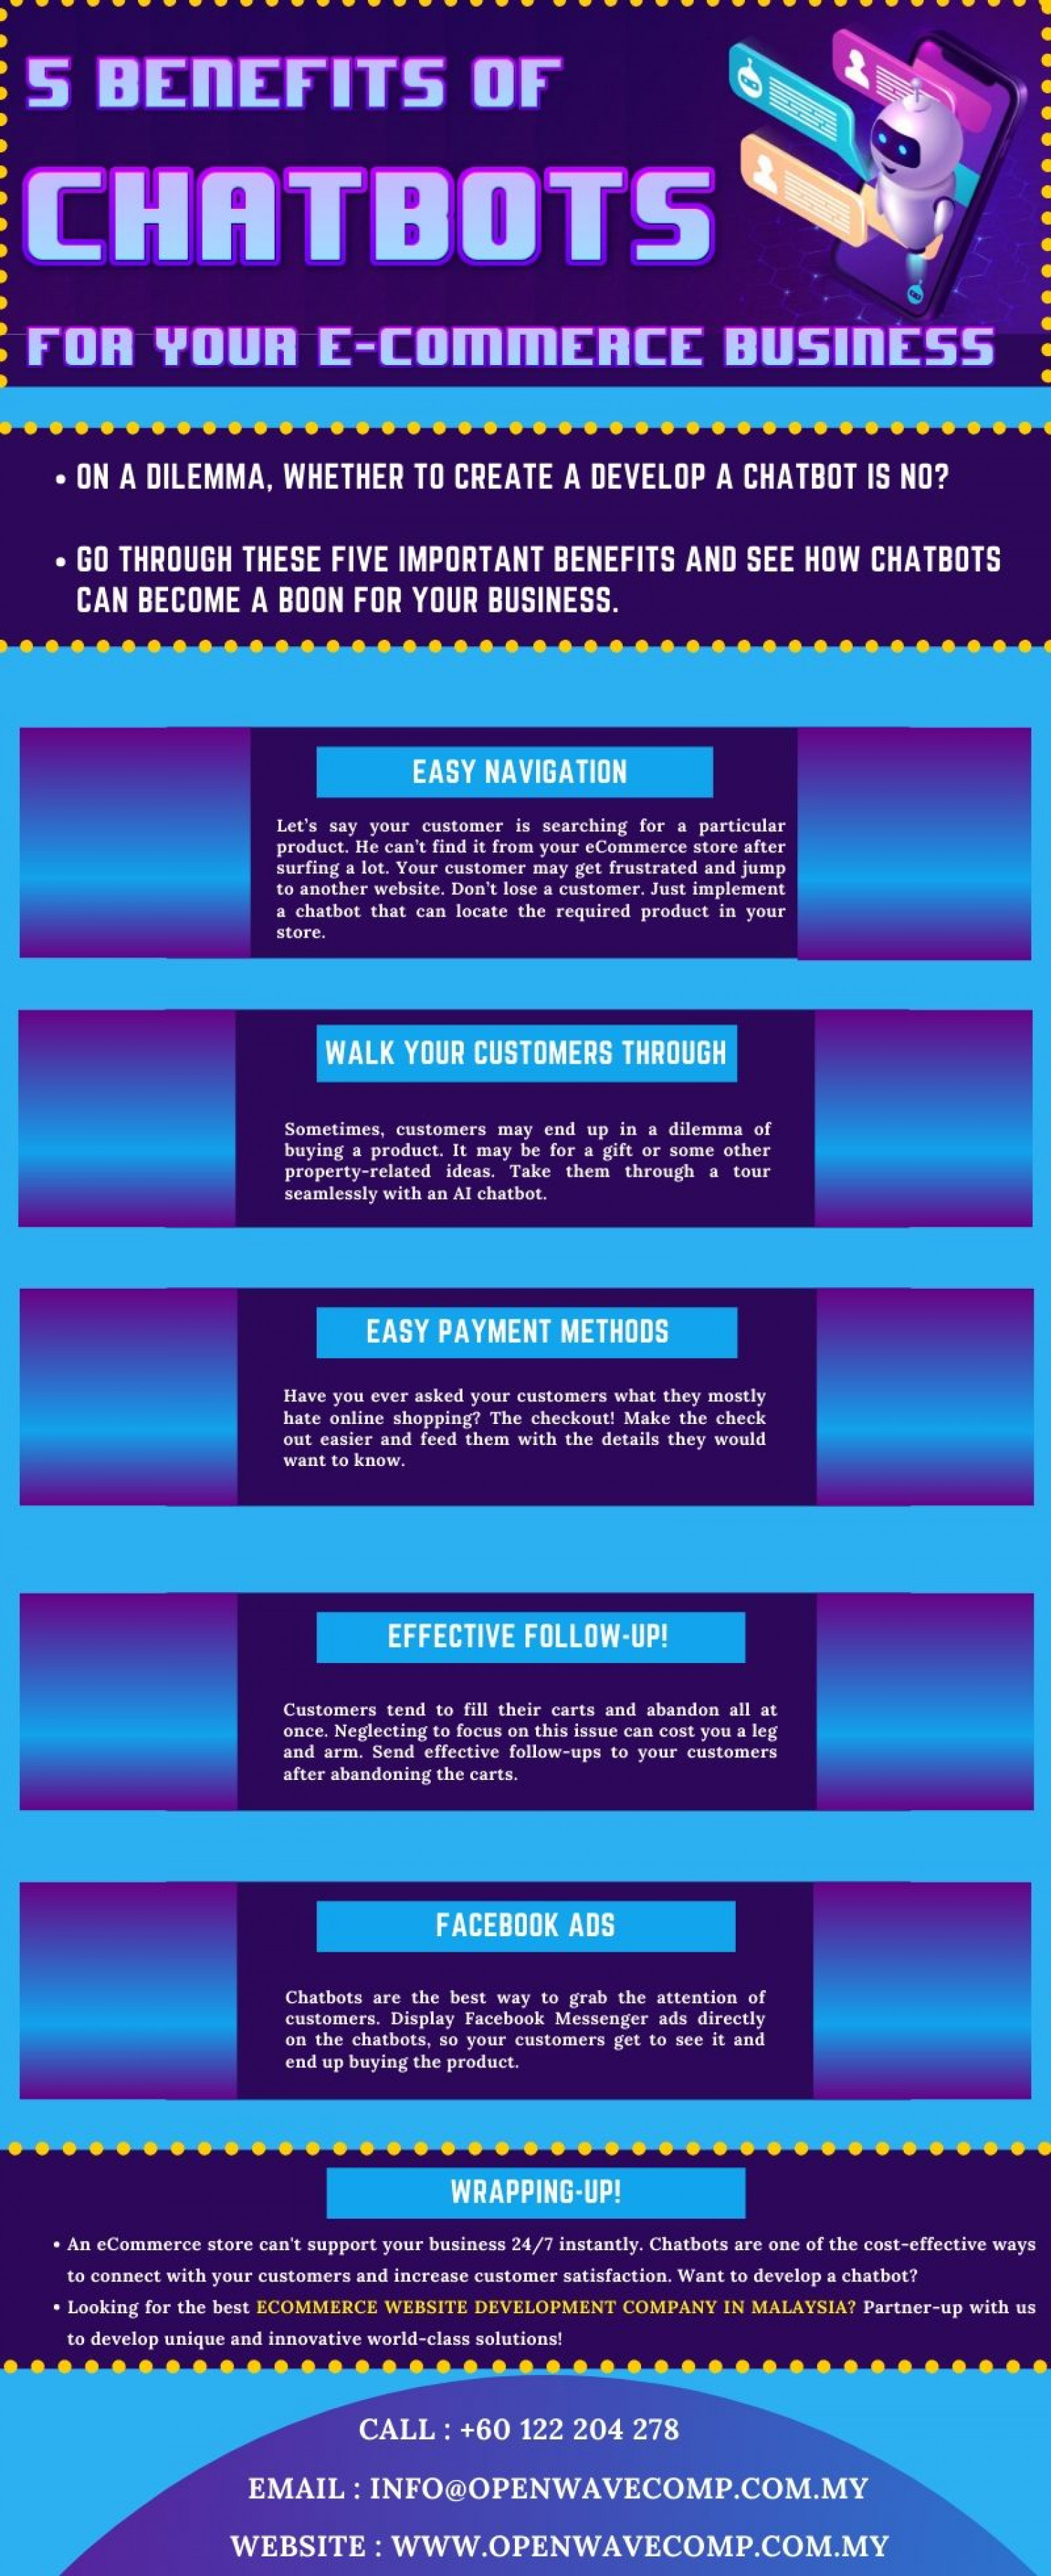 5 Benefits of Chatbots for Your E-Commerce Business Infographic